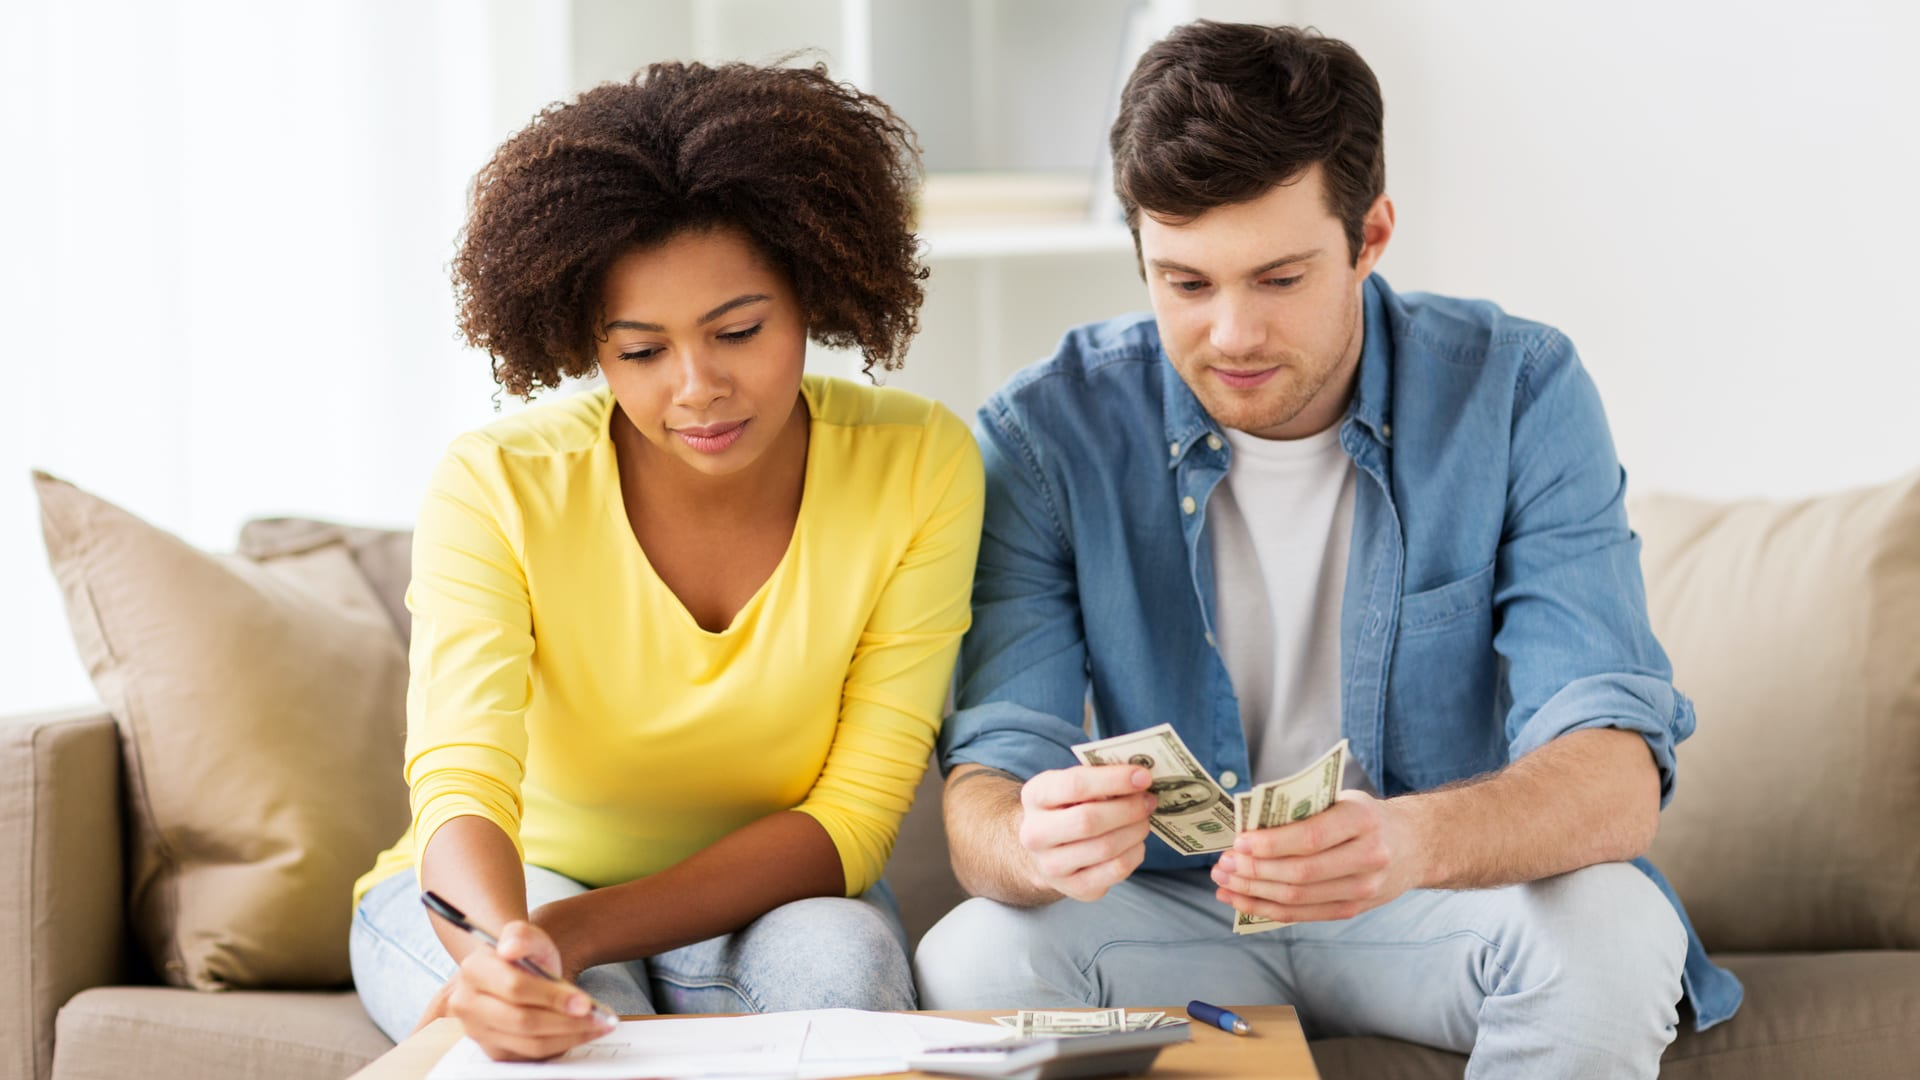 A young couple budgeting their money